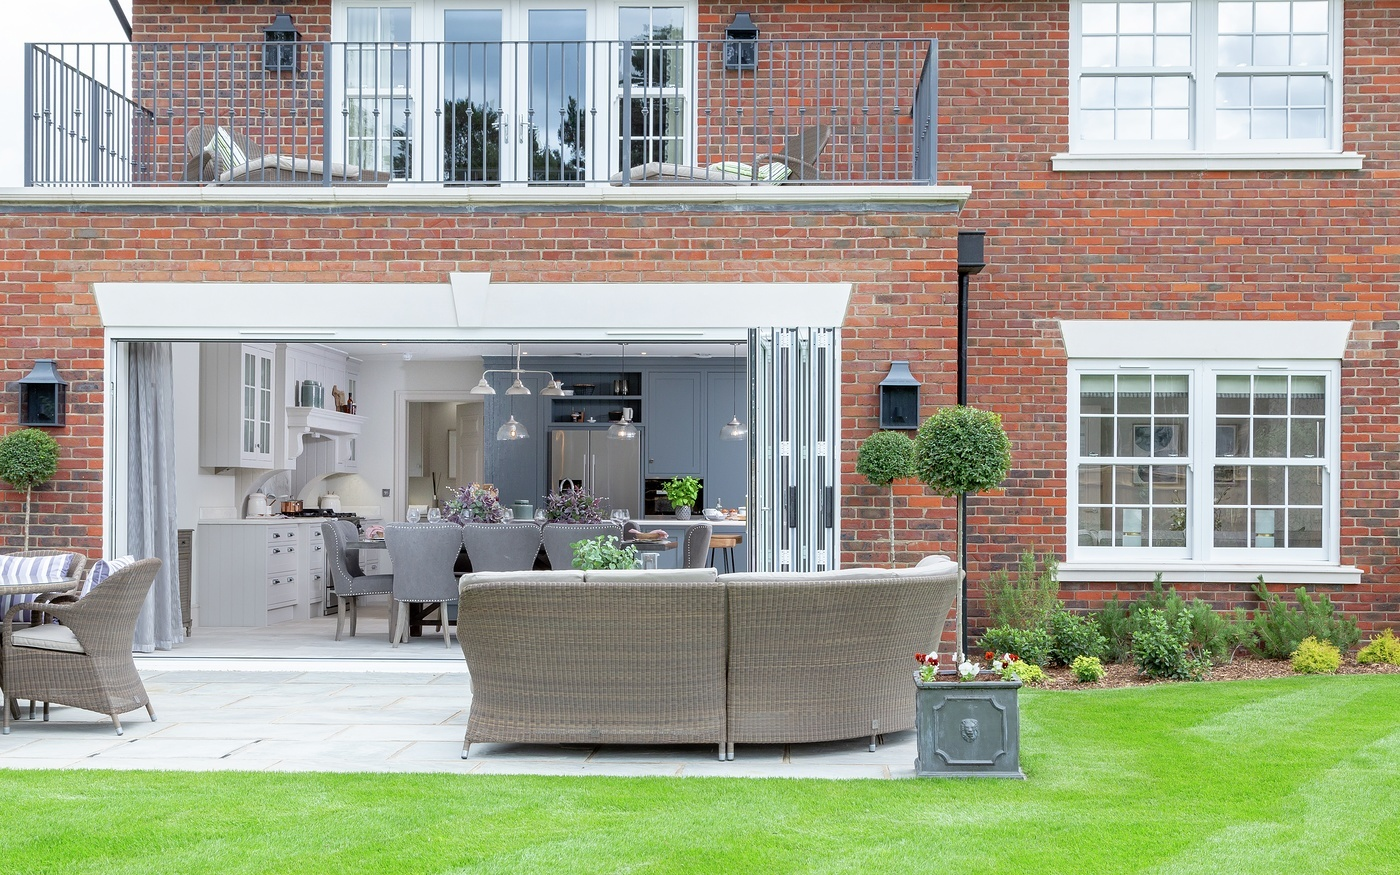 millgate-homes-ascot-our-work-developers-ascot-design-view5.jpg